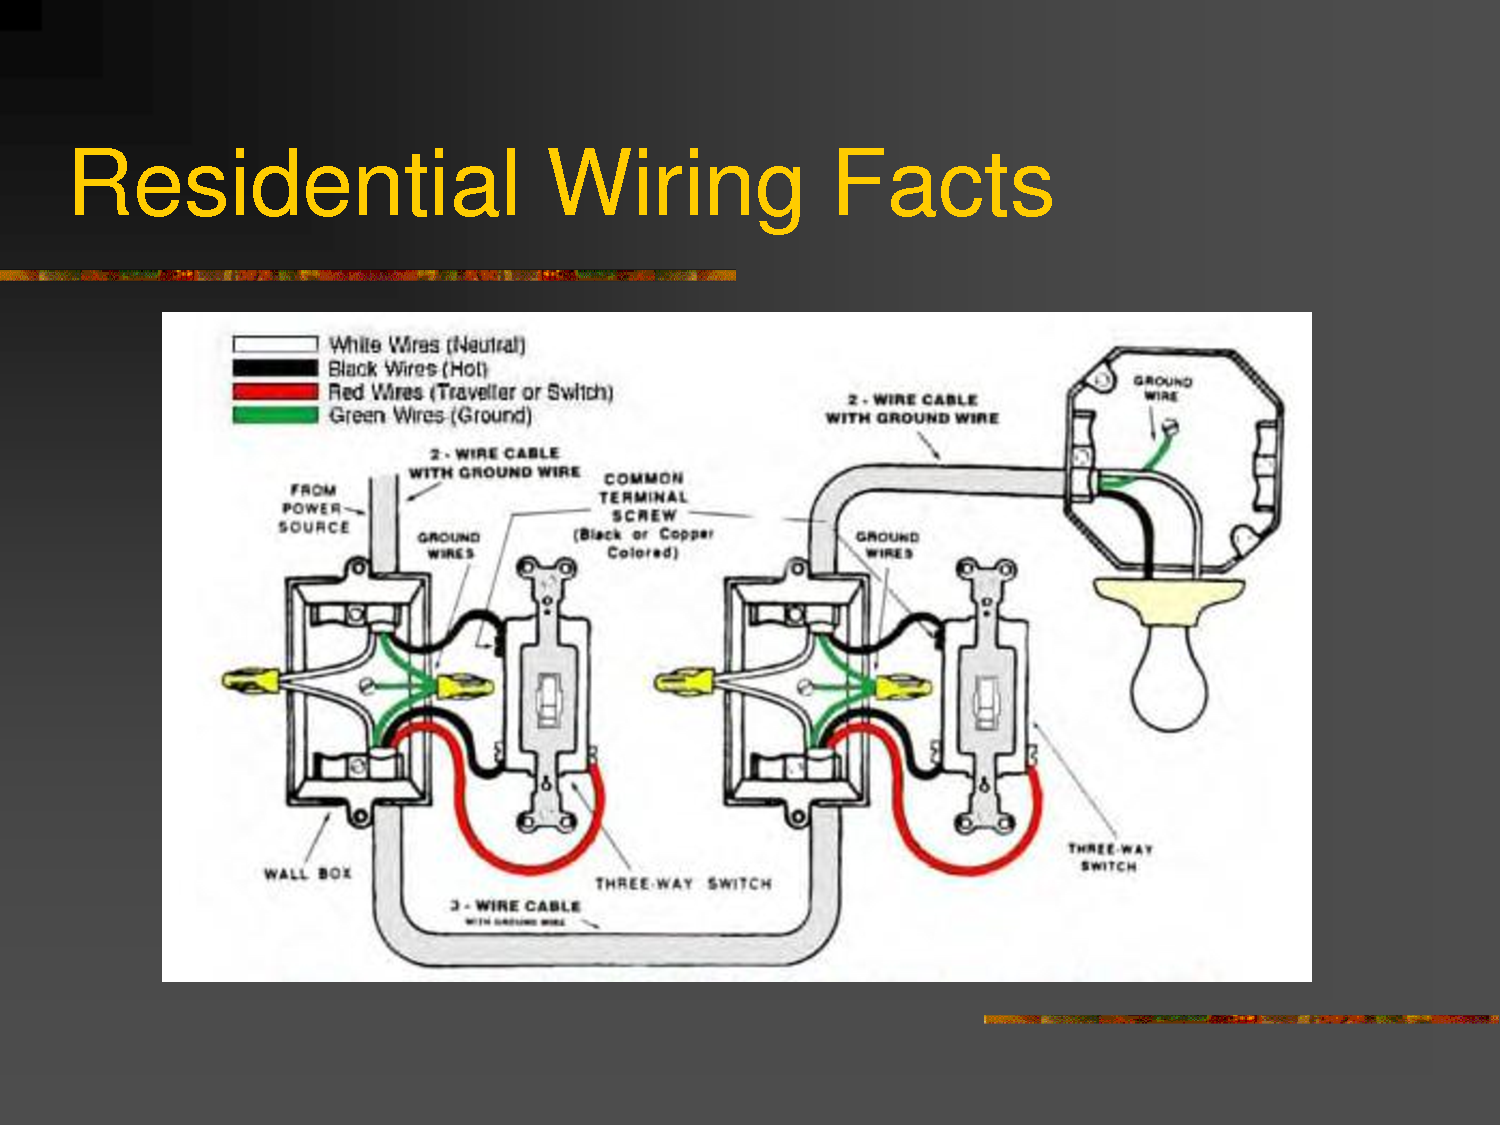 4 best images of residential wiring diagrams house electrical 4 best images of residential wiring diagrams house electrical light publicscrutiny Images